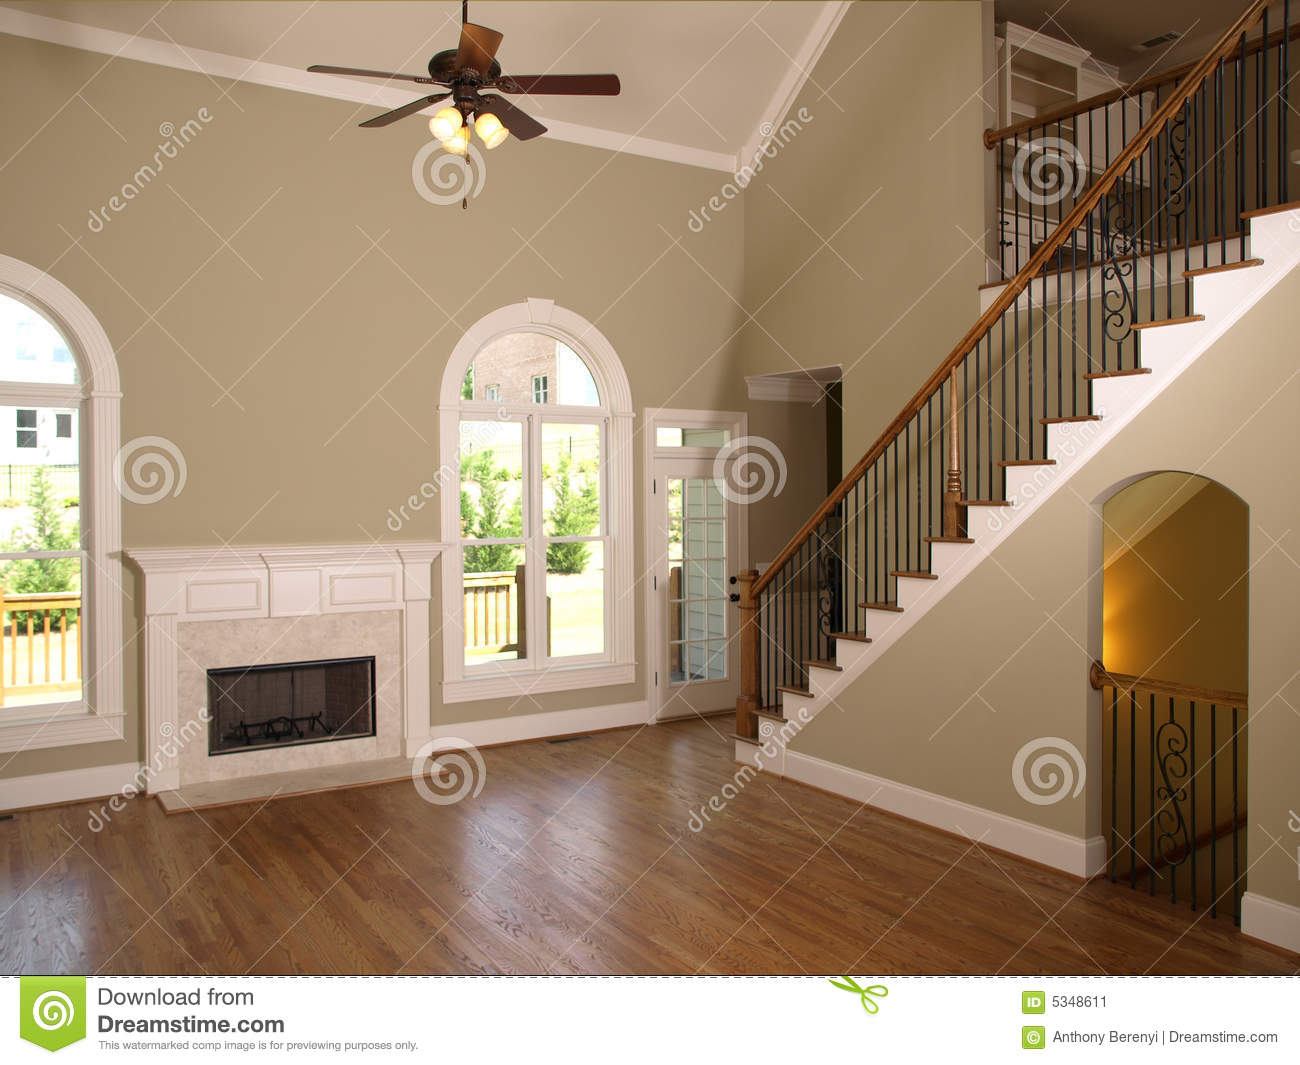 Model Home Living Room luxury model home living room staircase stock image - image: 5348611